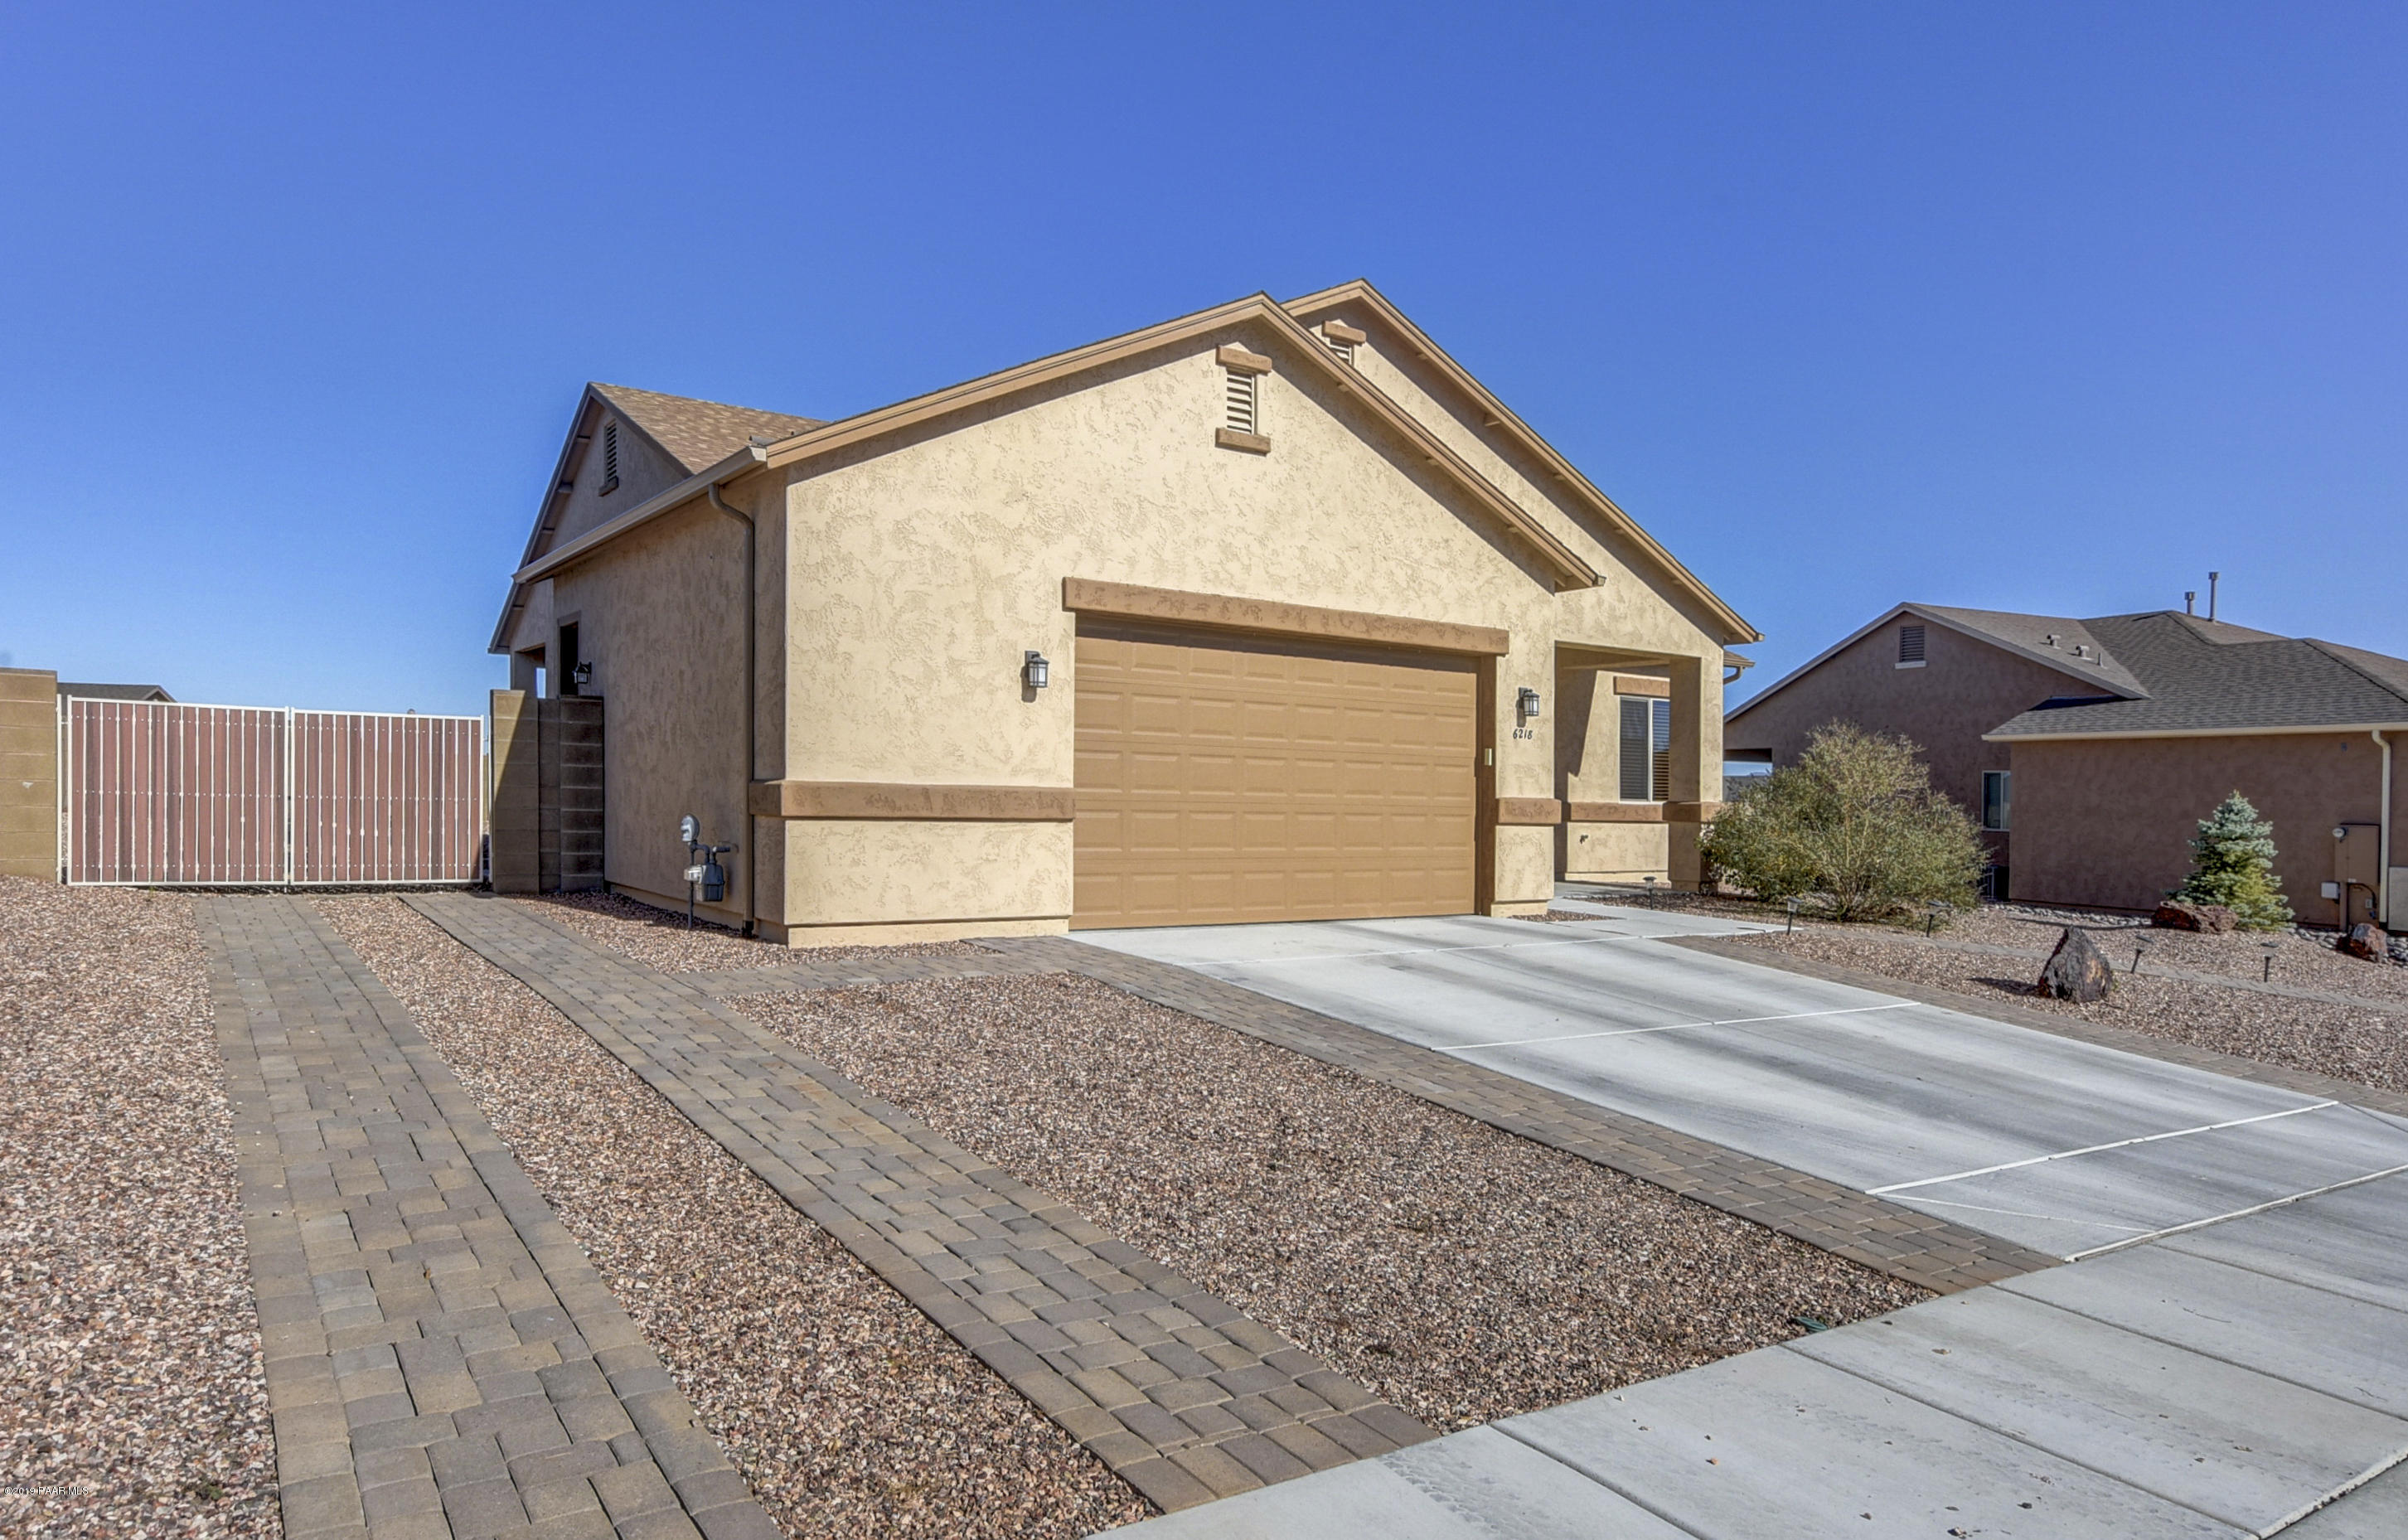 6218 E Stanbury Place 86314 - One of Prescott Valley Homes for Sale